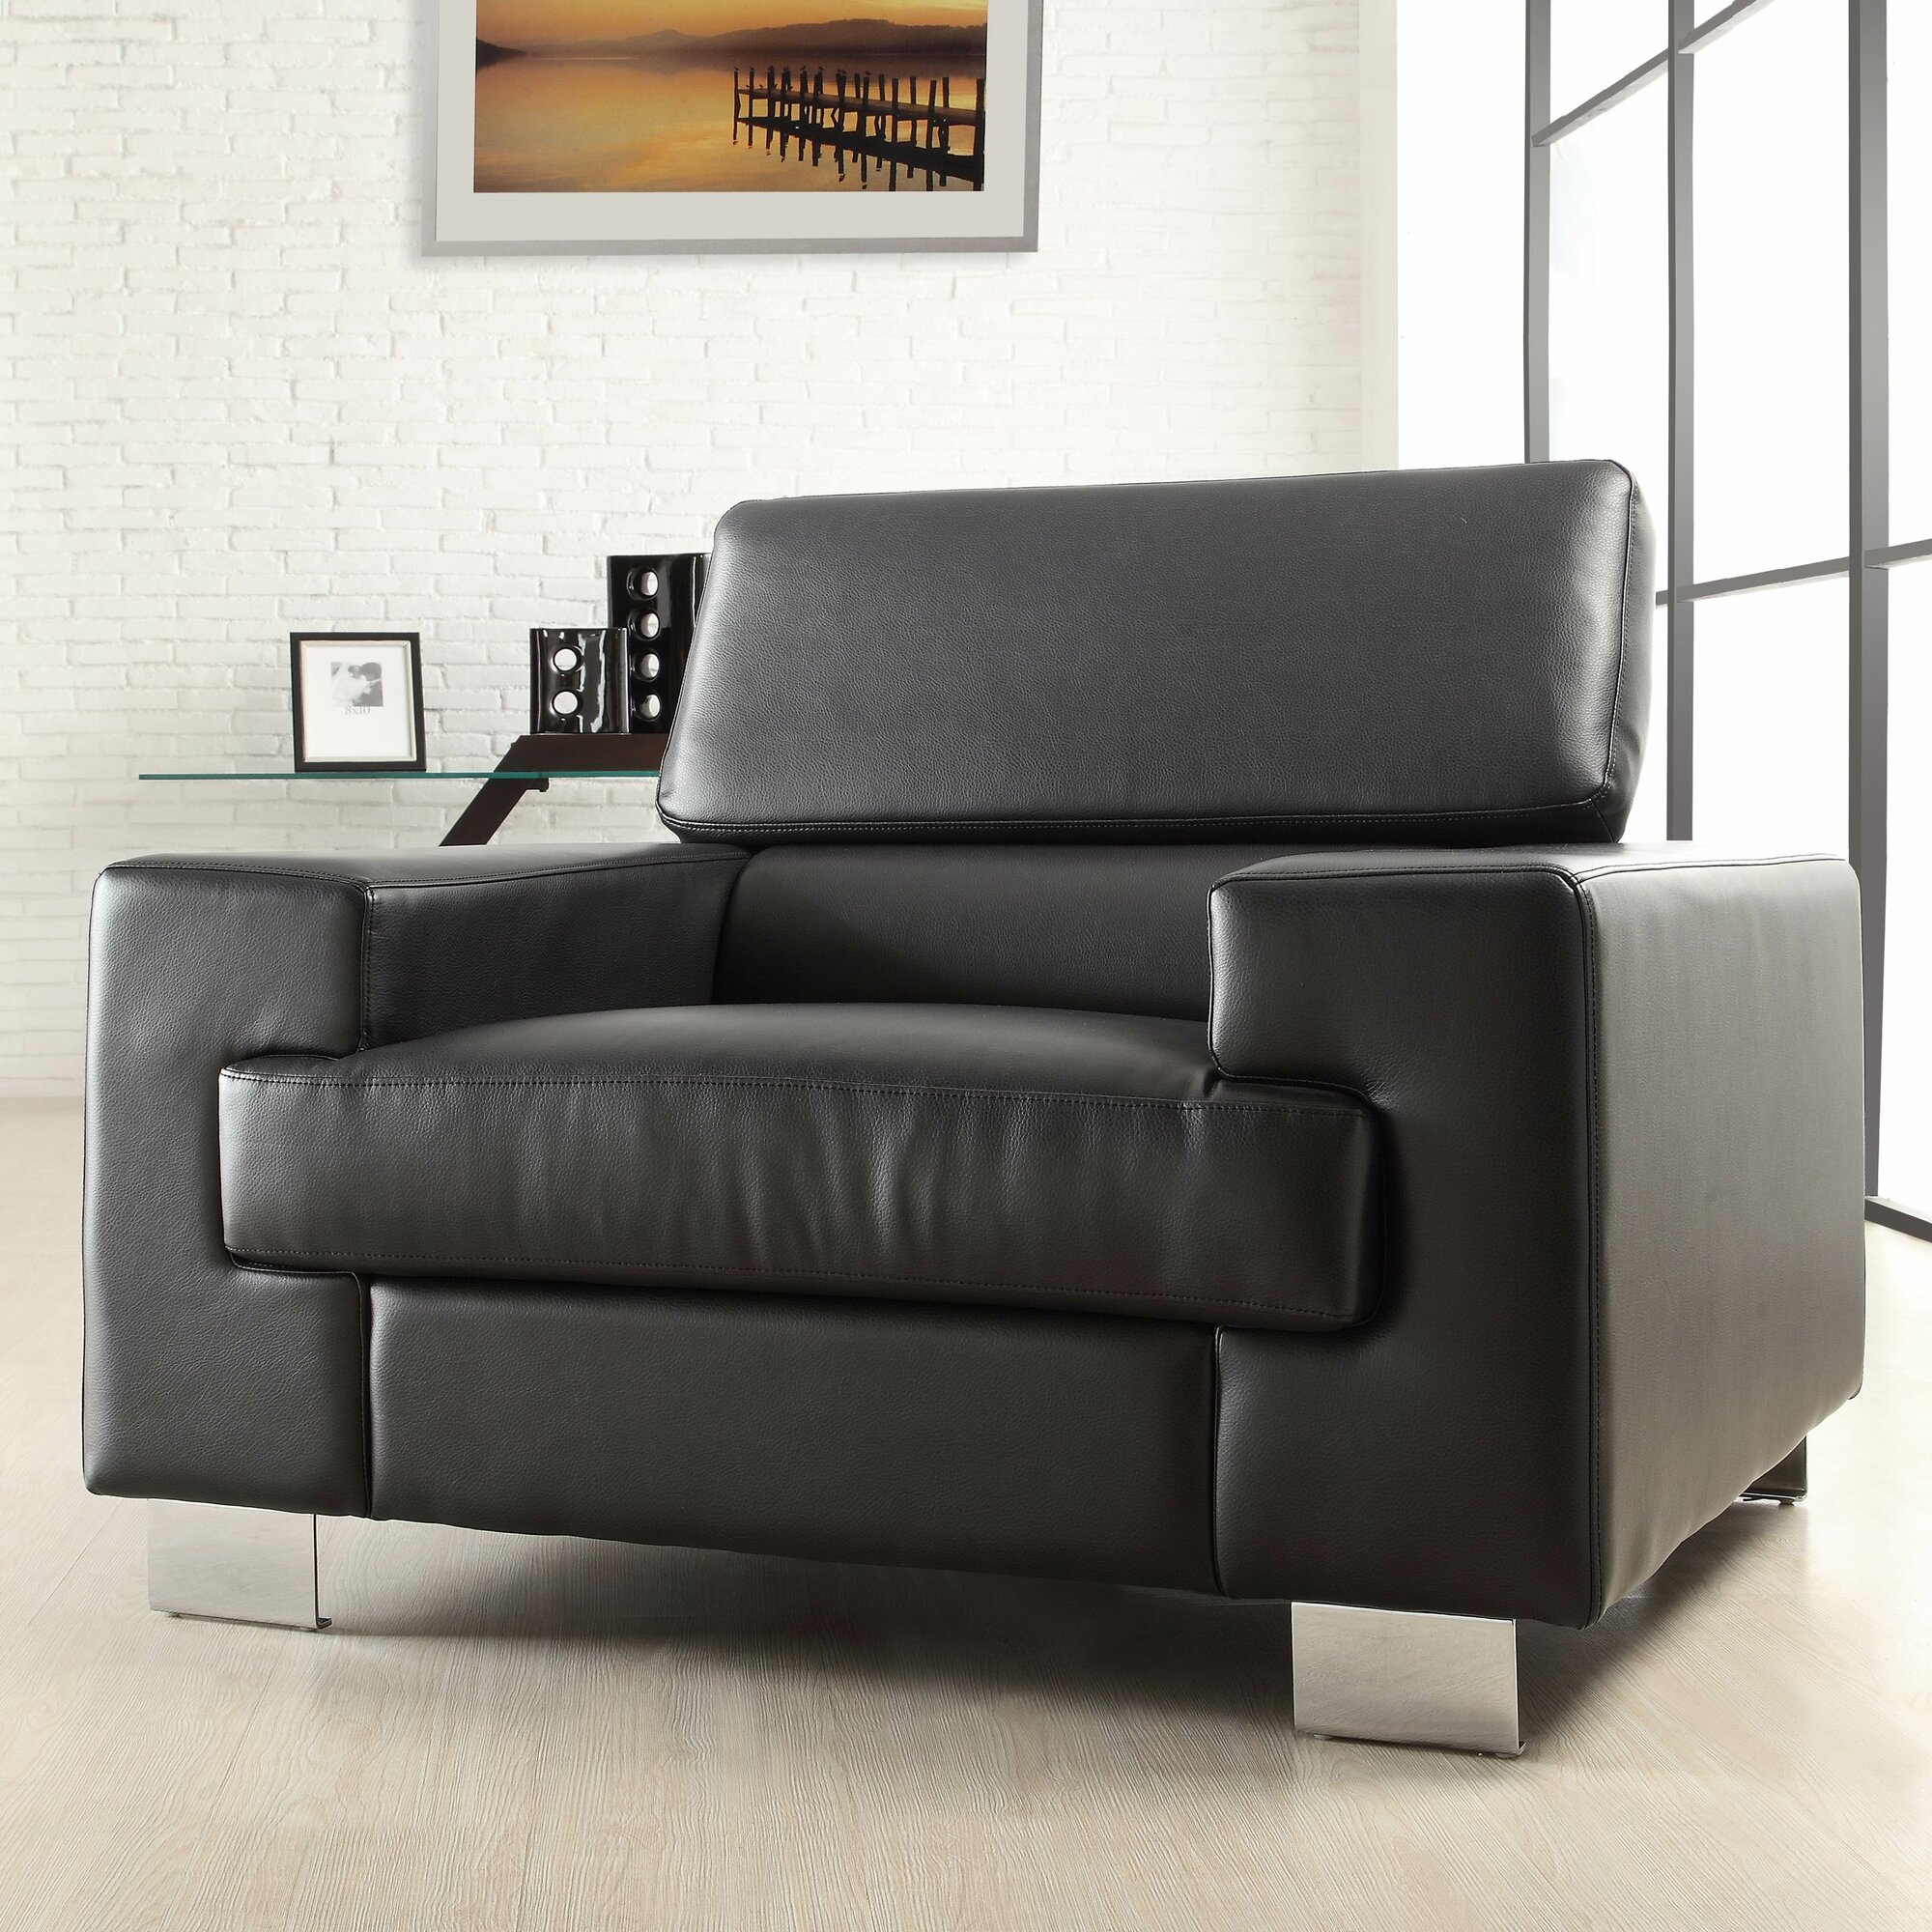 woodhaven living room furniture. Woodhaven Hill Vernon Living Room Collection Reviews Wayfair  Furniture safemarket us